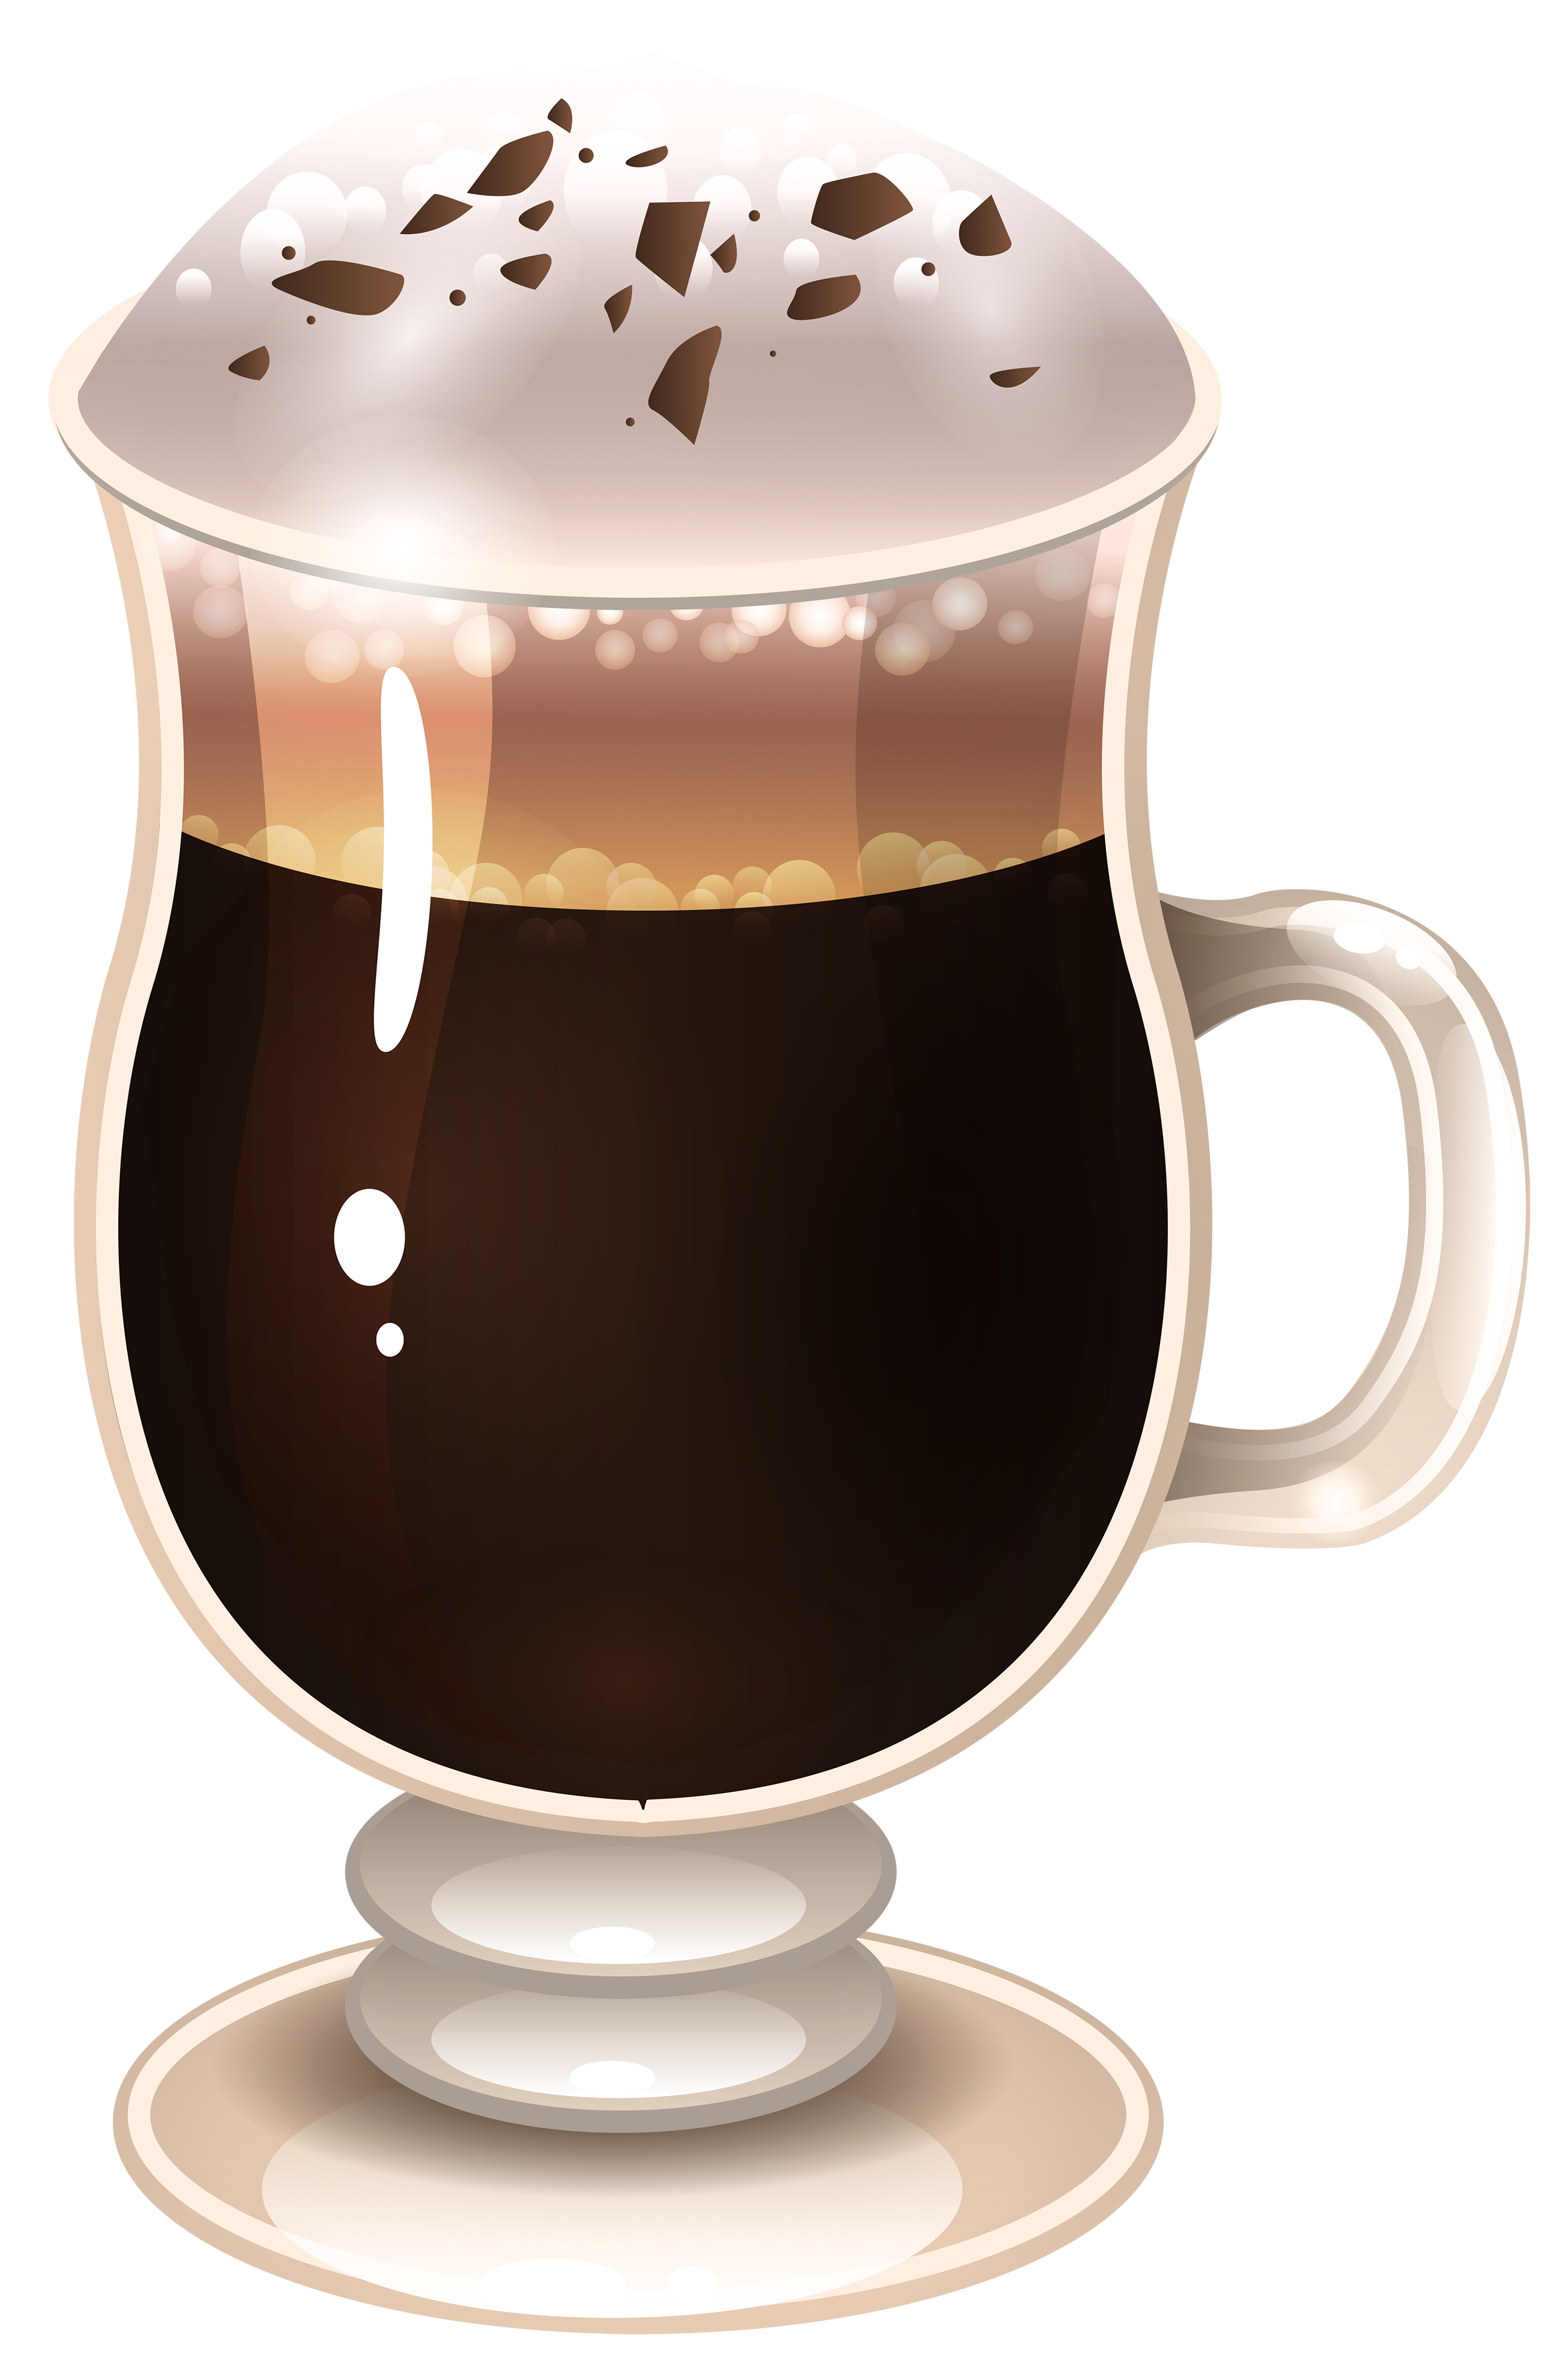 Cafe latte clipart - Clipground